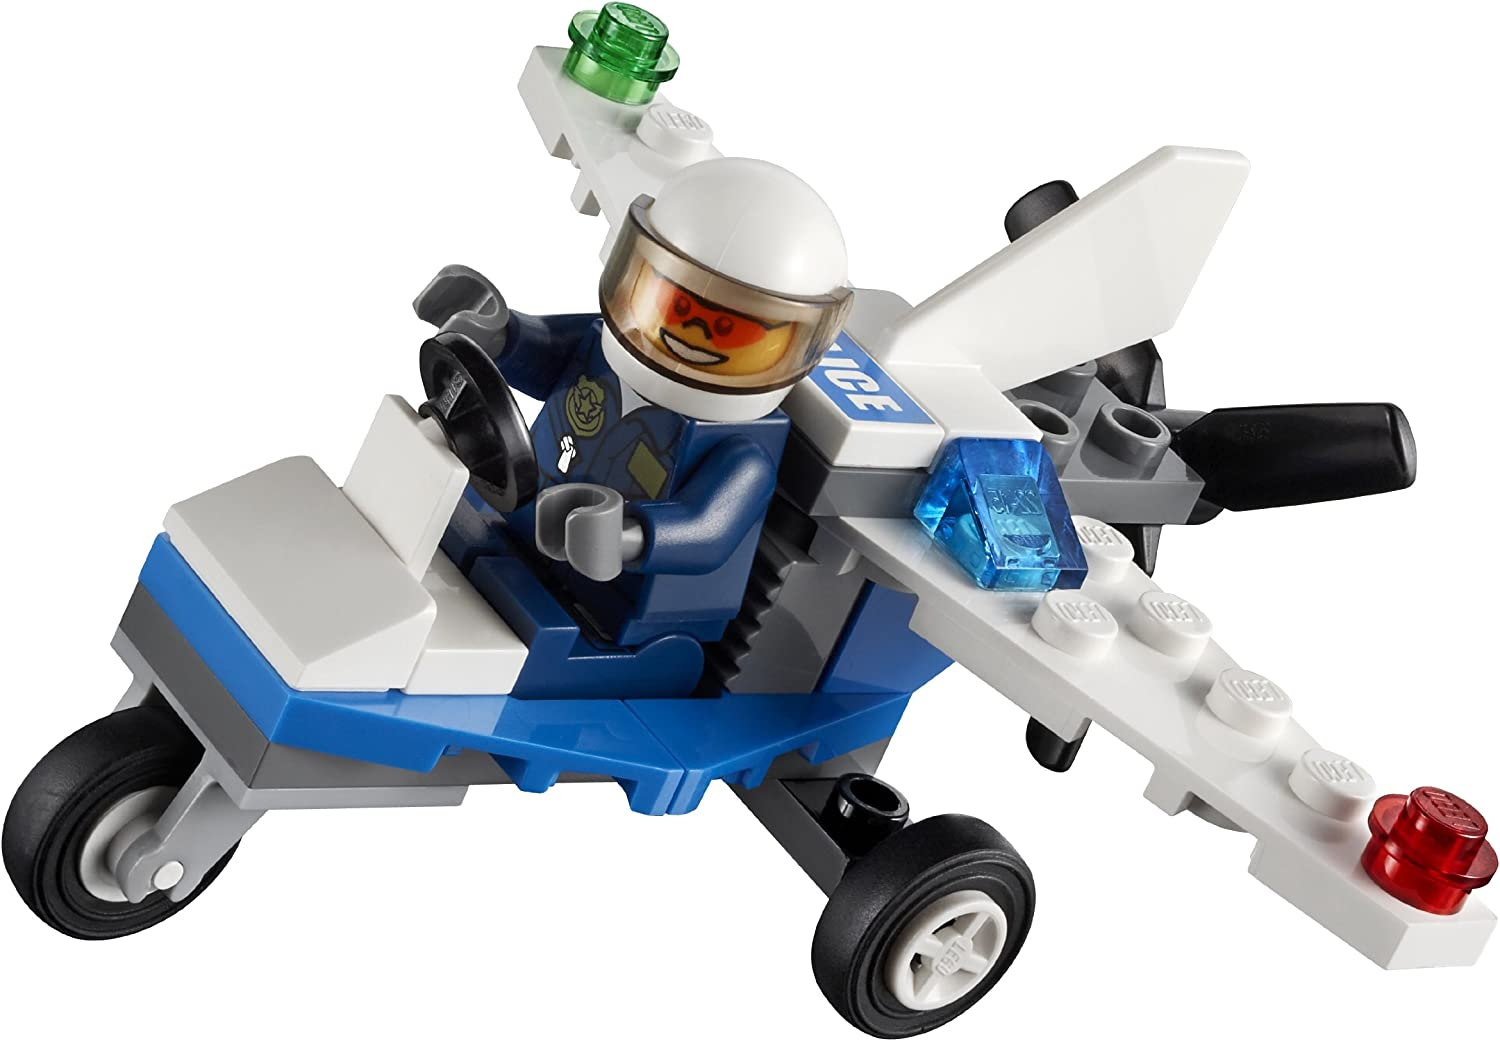 LEGO City Mini Figure Police Plane 30018 (Bagged)